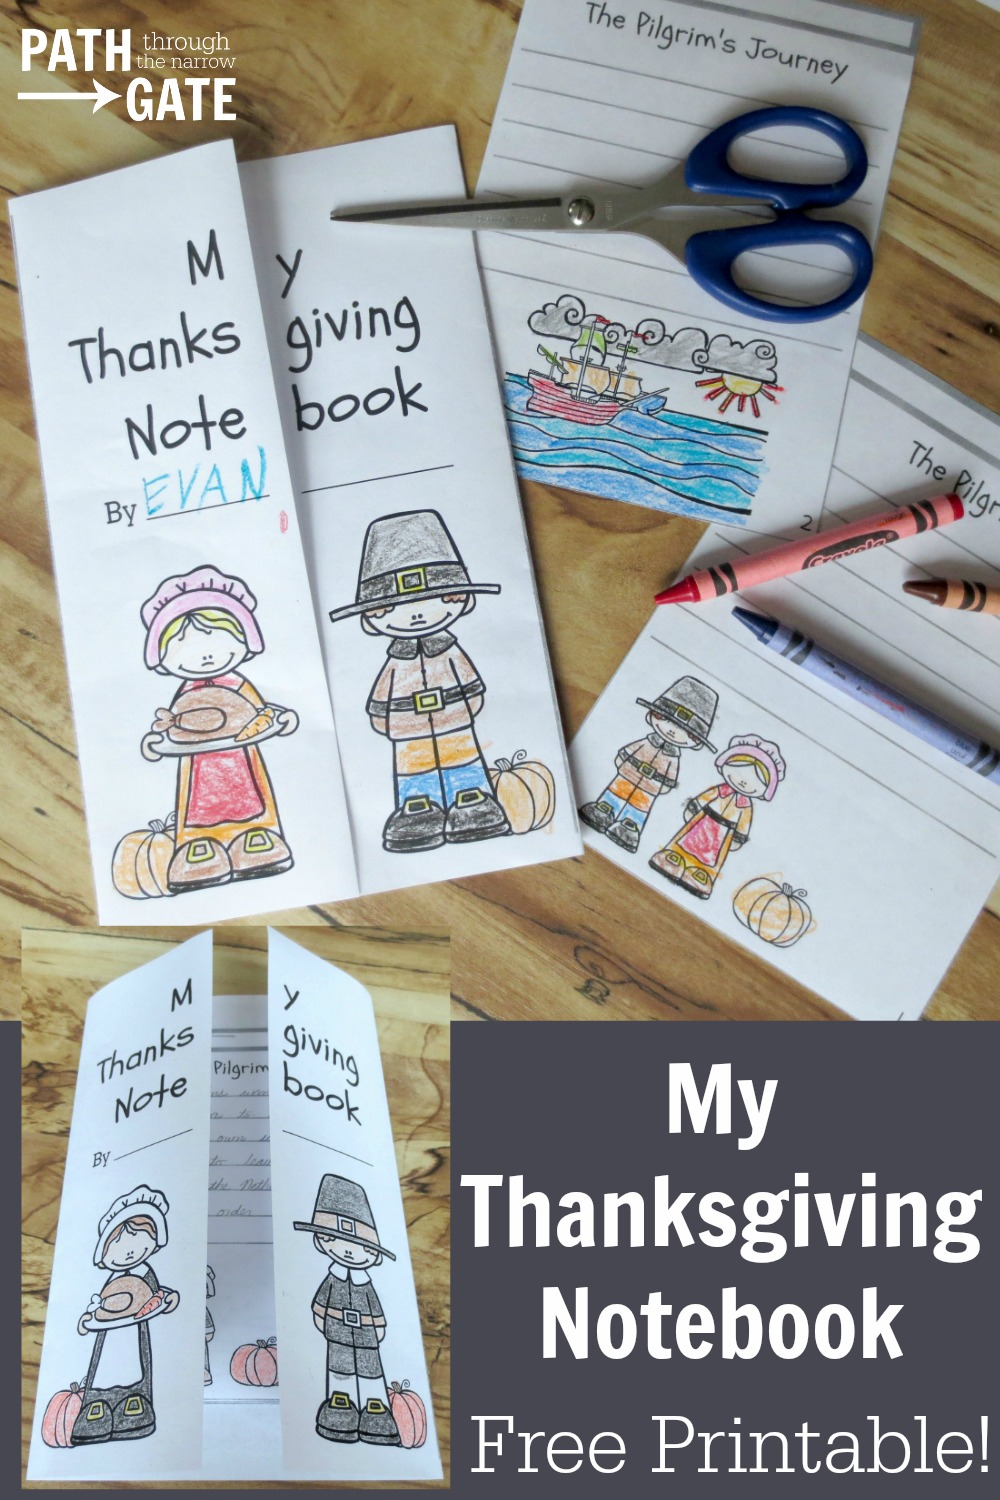 Teach your kids what Thanksgiving is all about with this fun Thanksgiving notebook, an activity that younger and older kids will both enjoy!